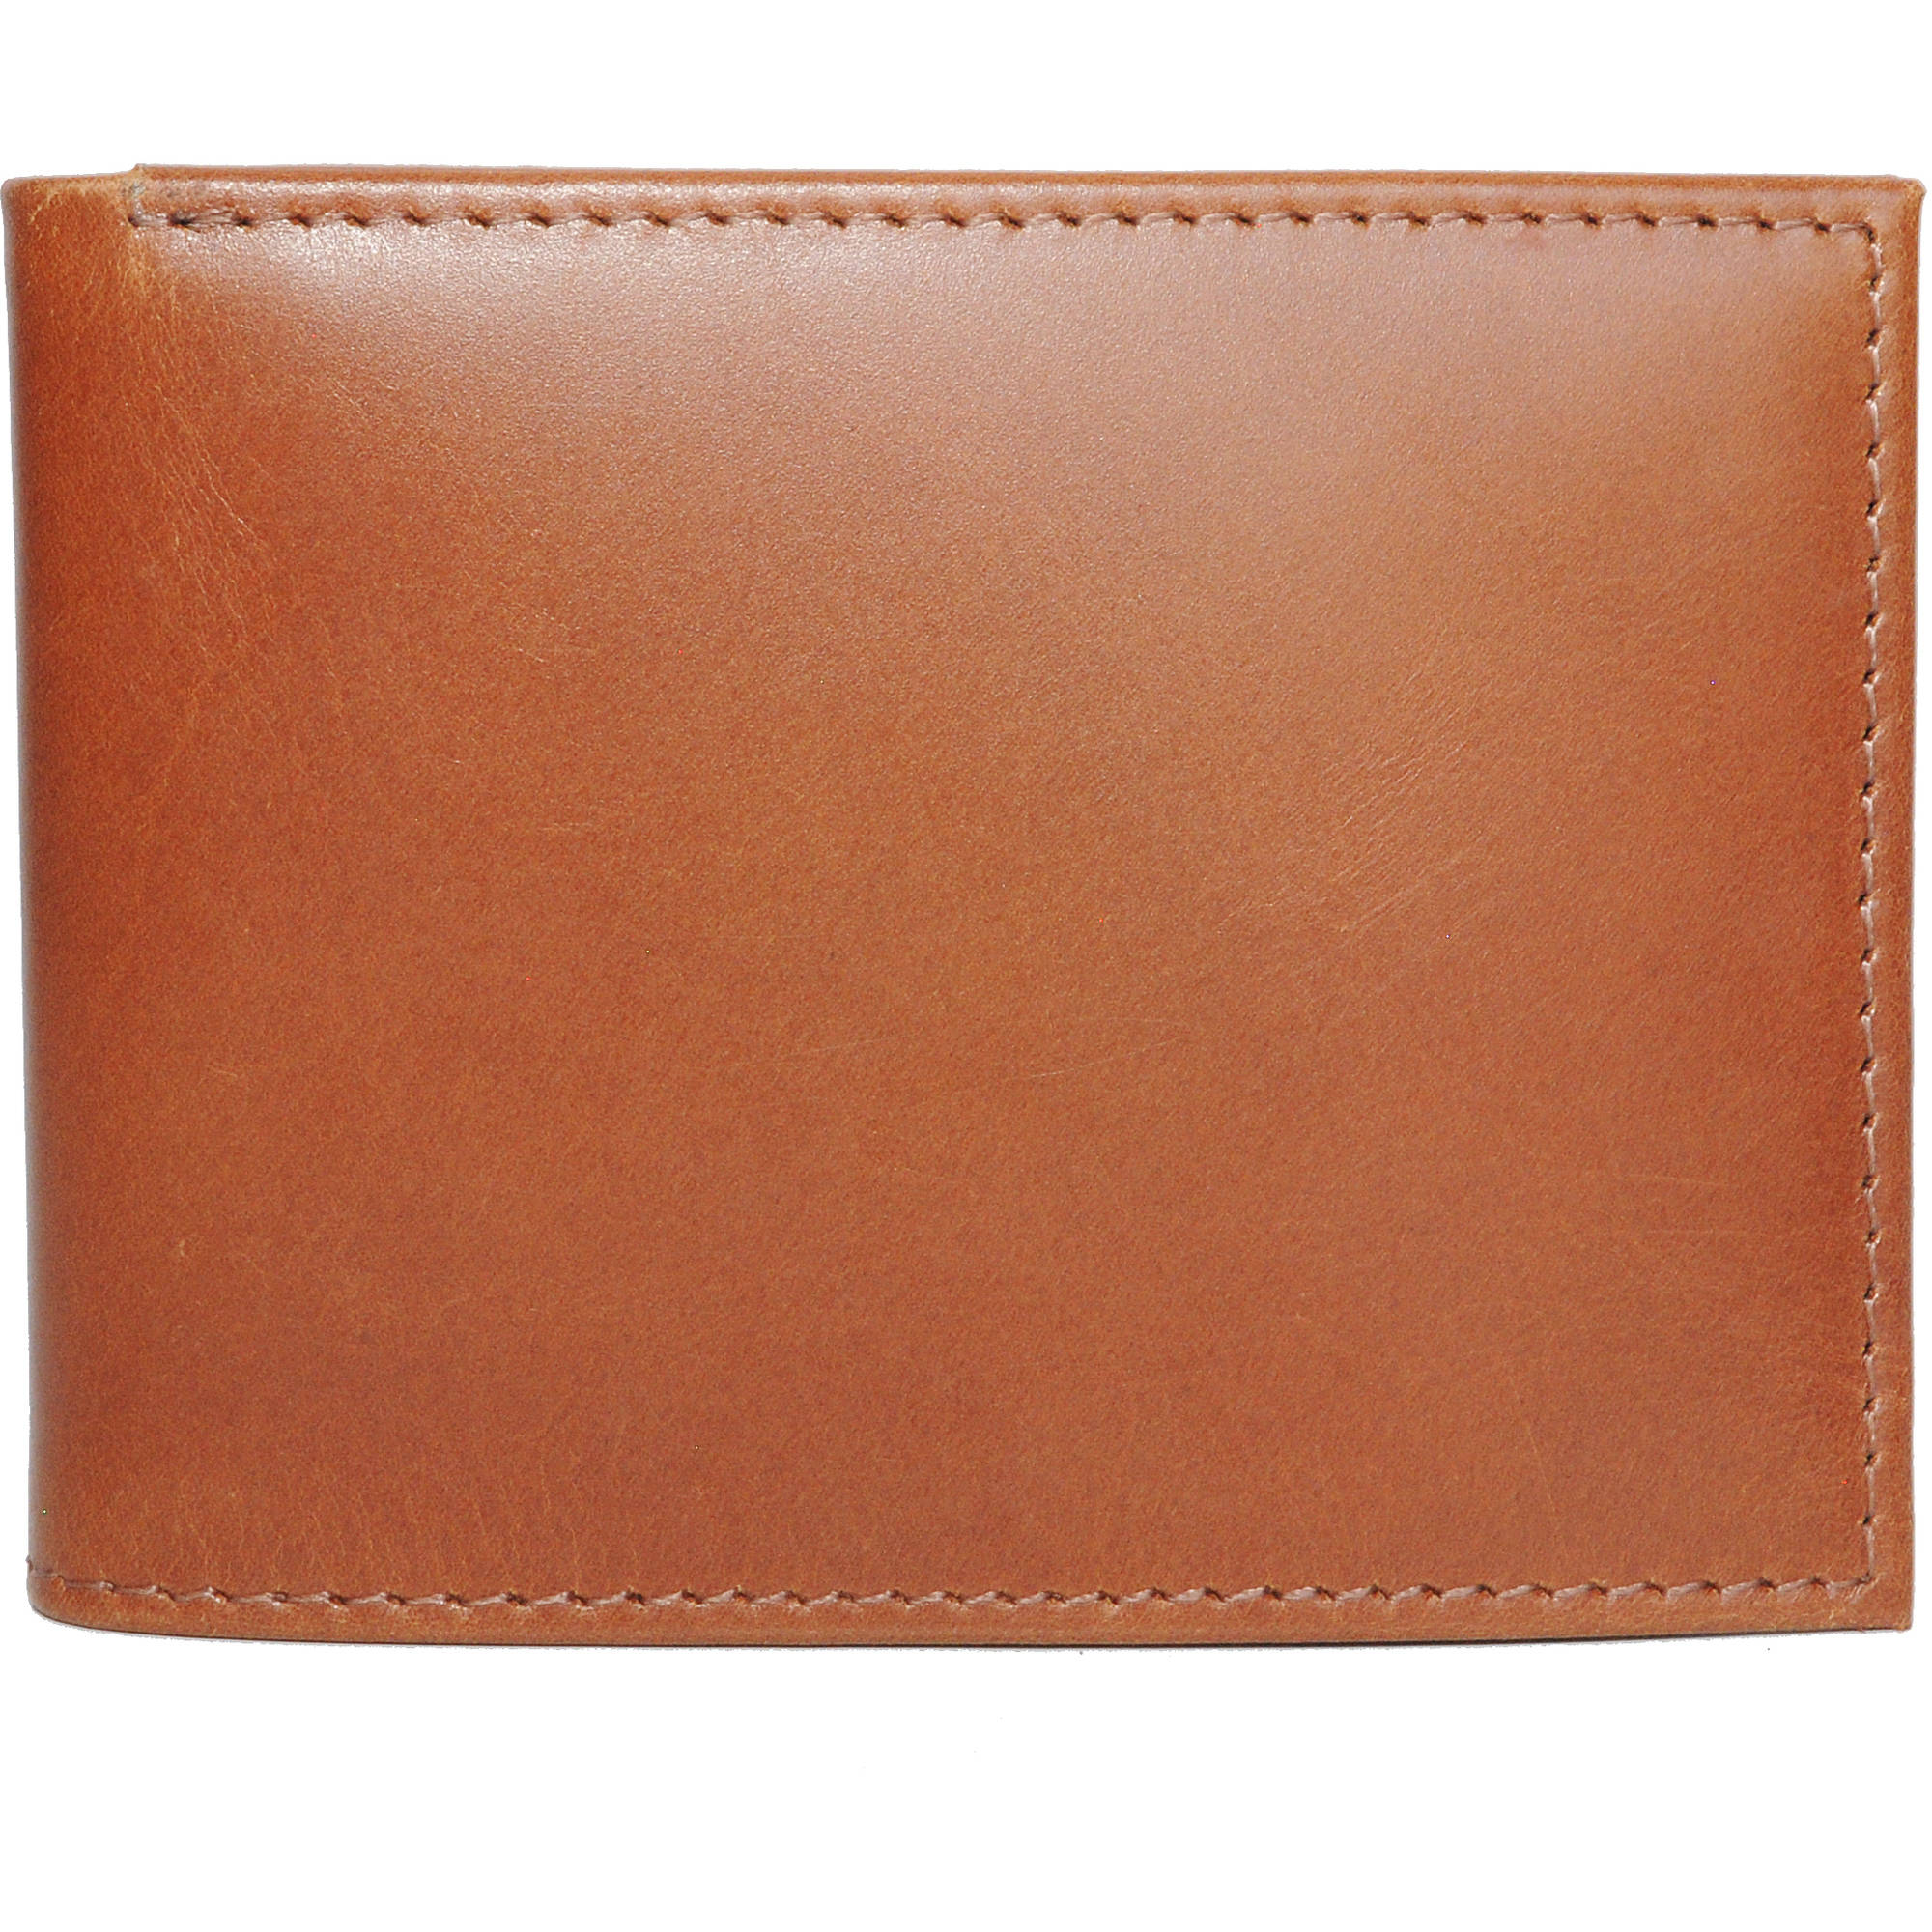 Fionte - Leather Billfold Wallet